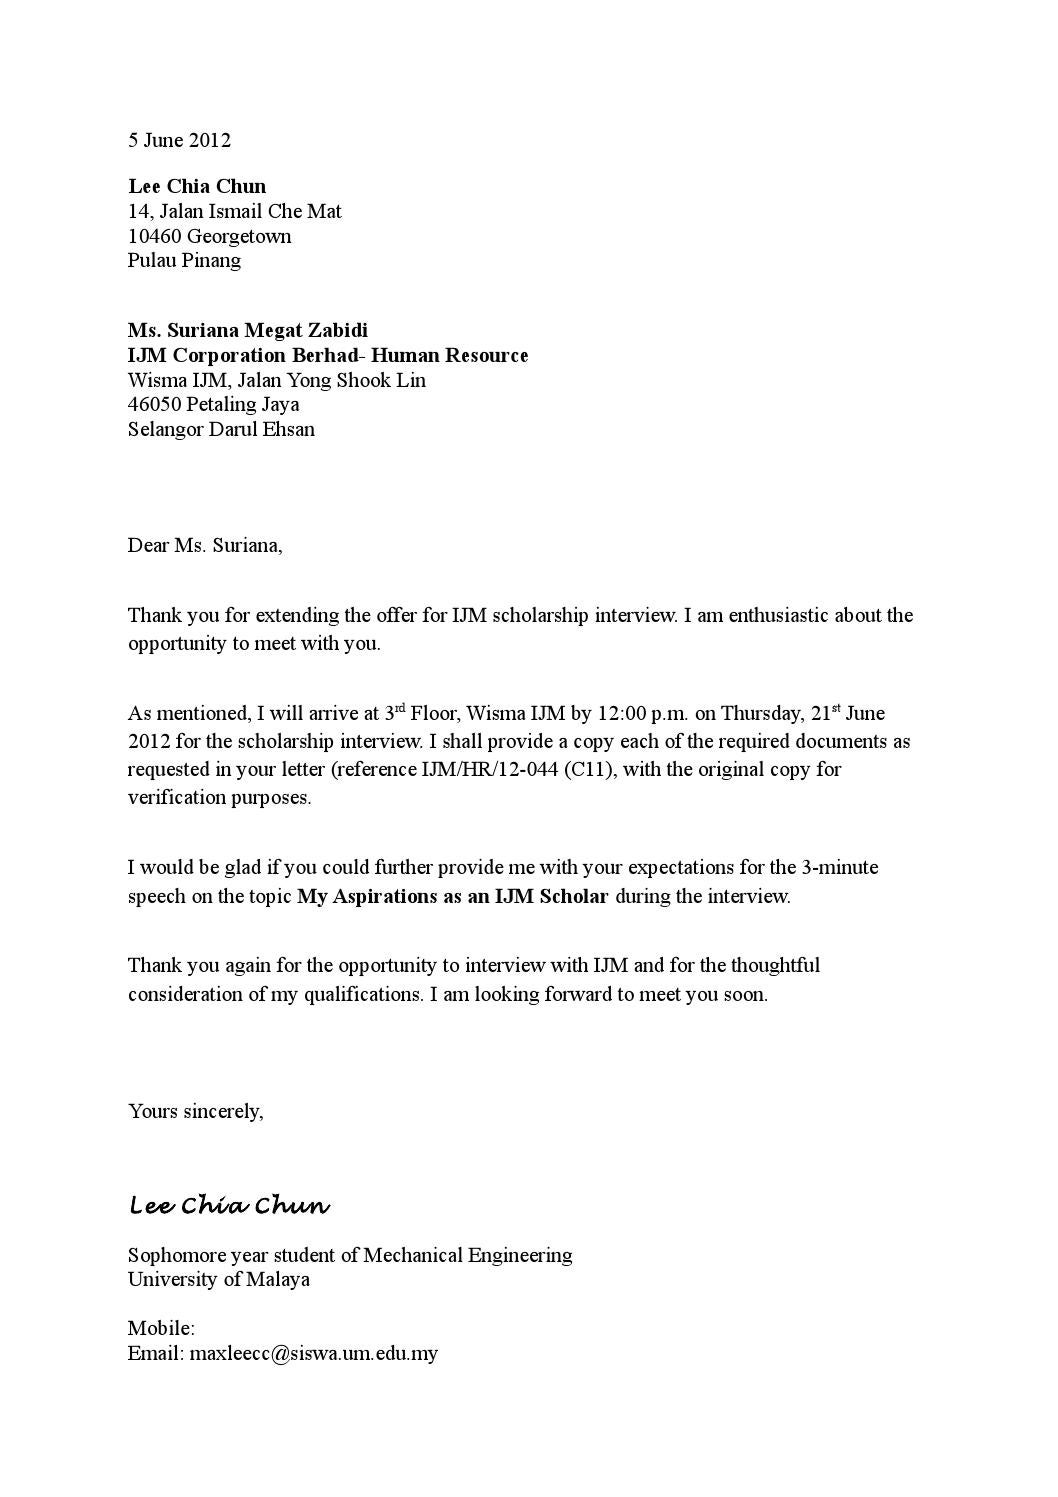 confirmation letter to attend an interview by max lee issuu